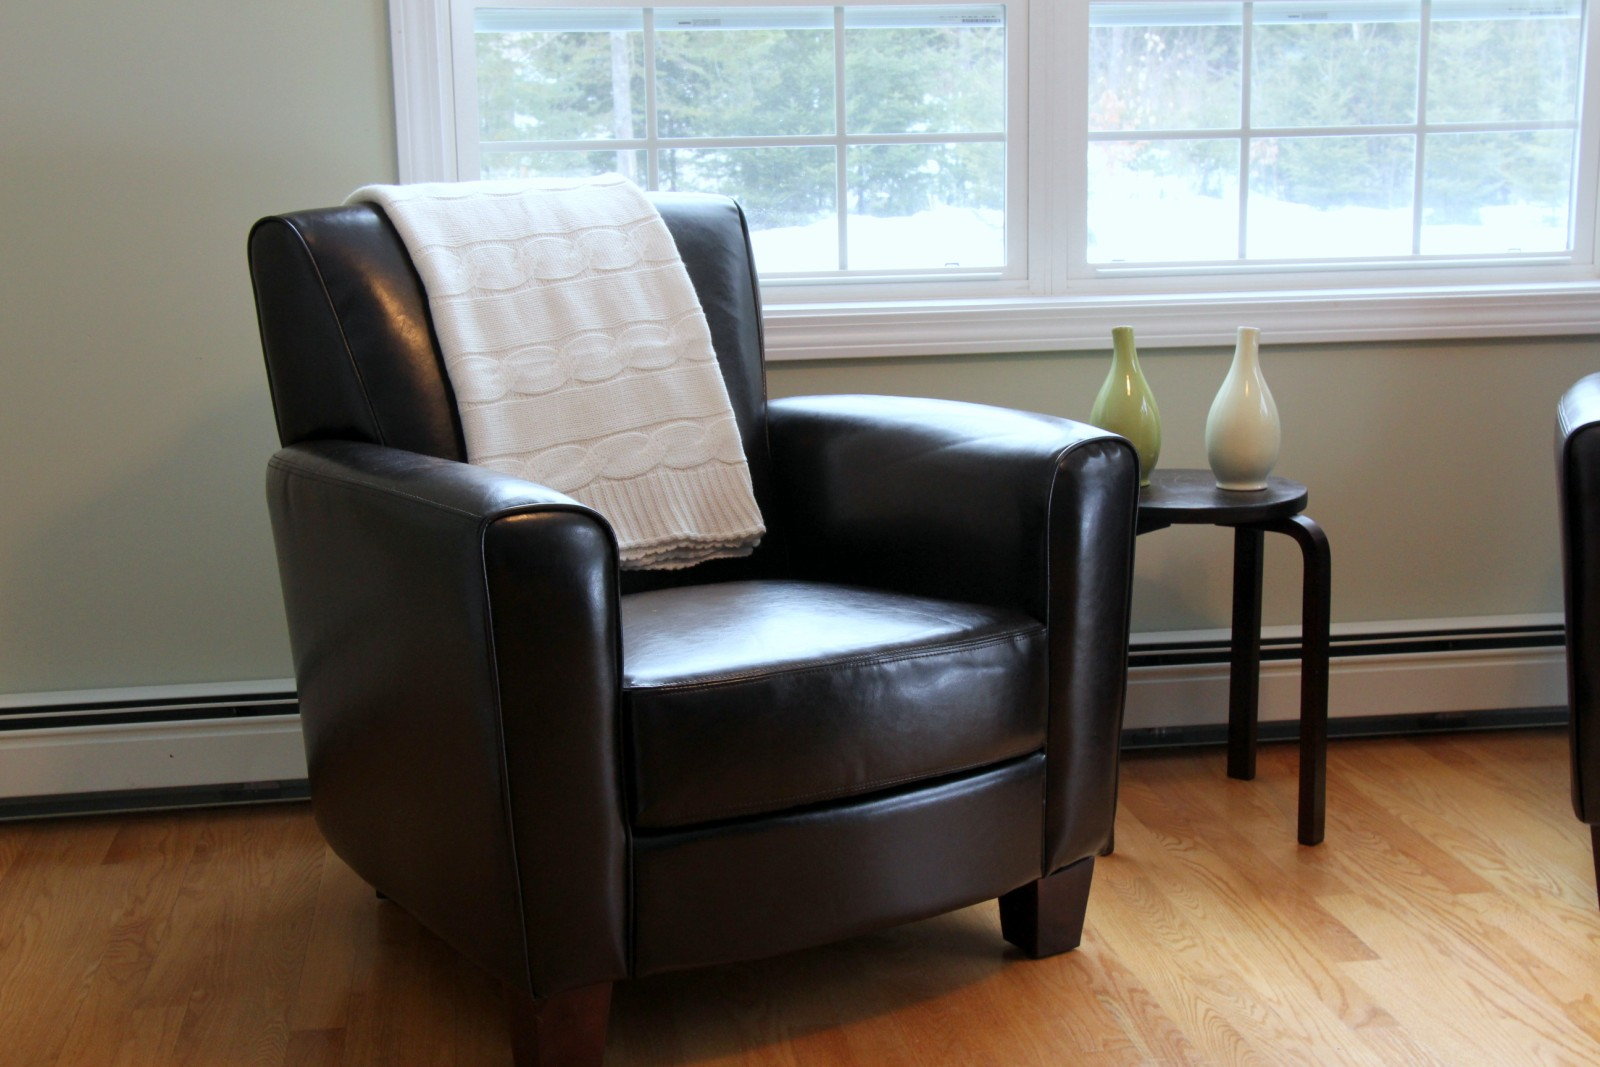 Leather Chairs Target Heart Maine Home New Chairs For The Front Room